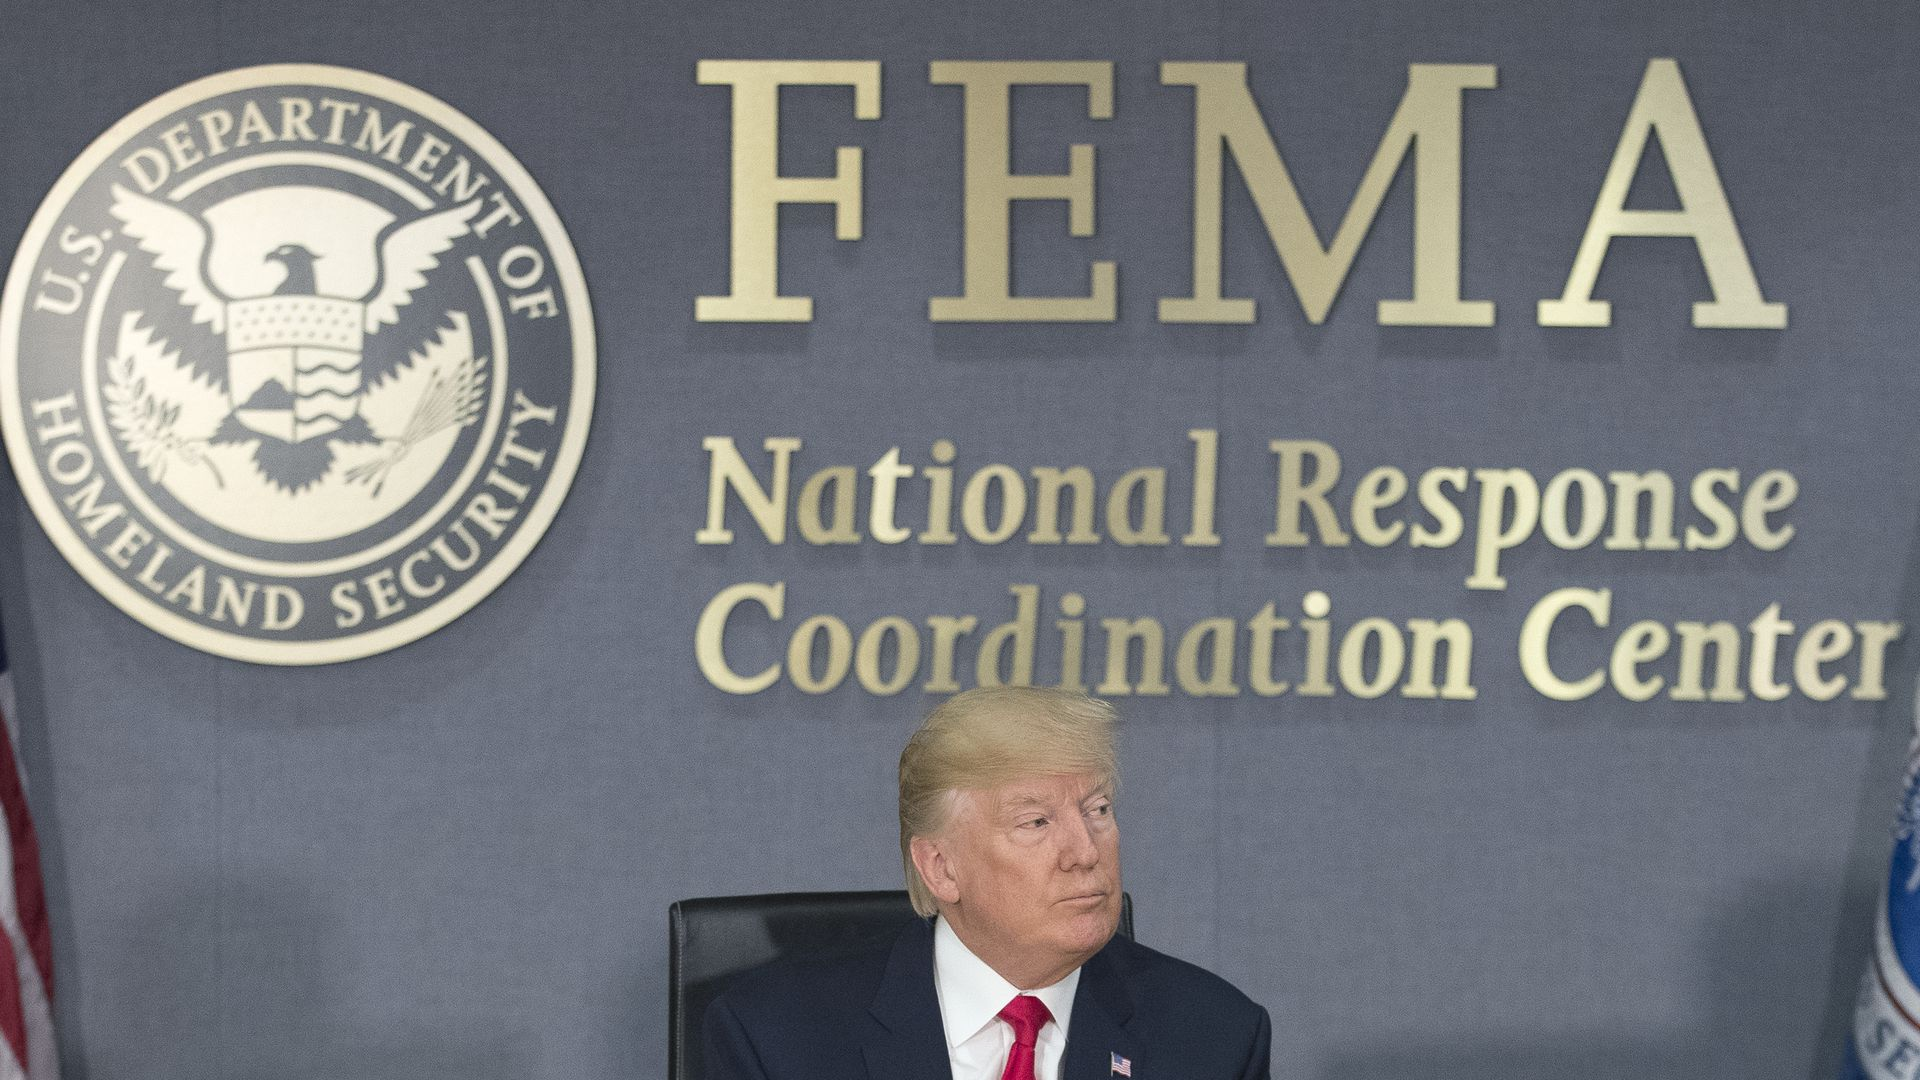 Donald Trump speaks during a visit to Federal Emergency Management Agency (FEMA) HQ